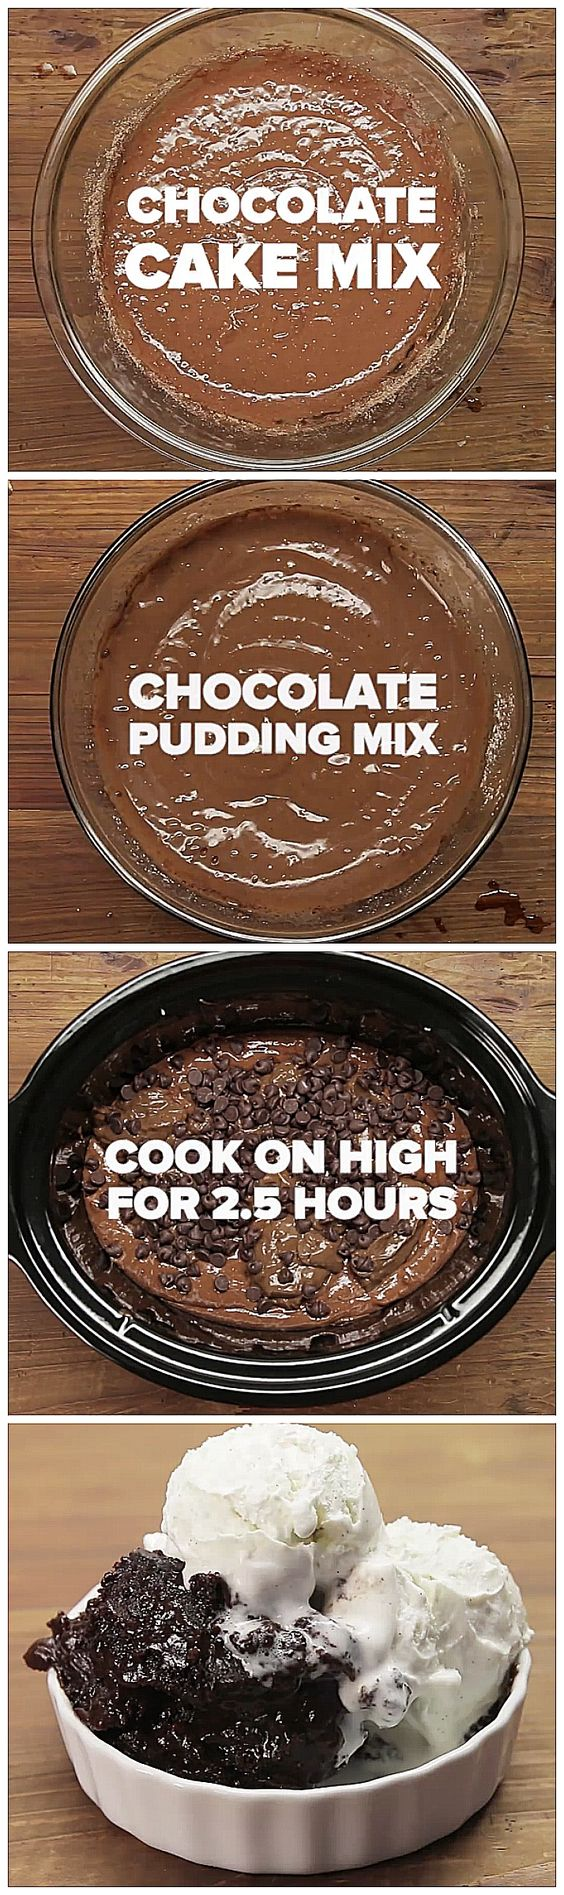 Chocolate Lava Cake/ I like the comment about using fudge icing dropped by large spoonsful instead of the pudding.: